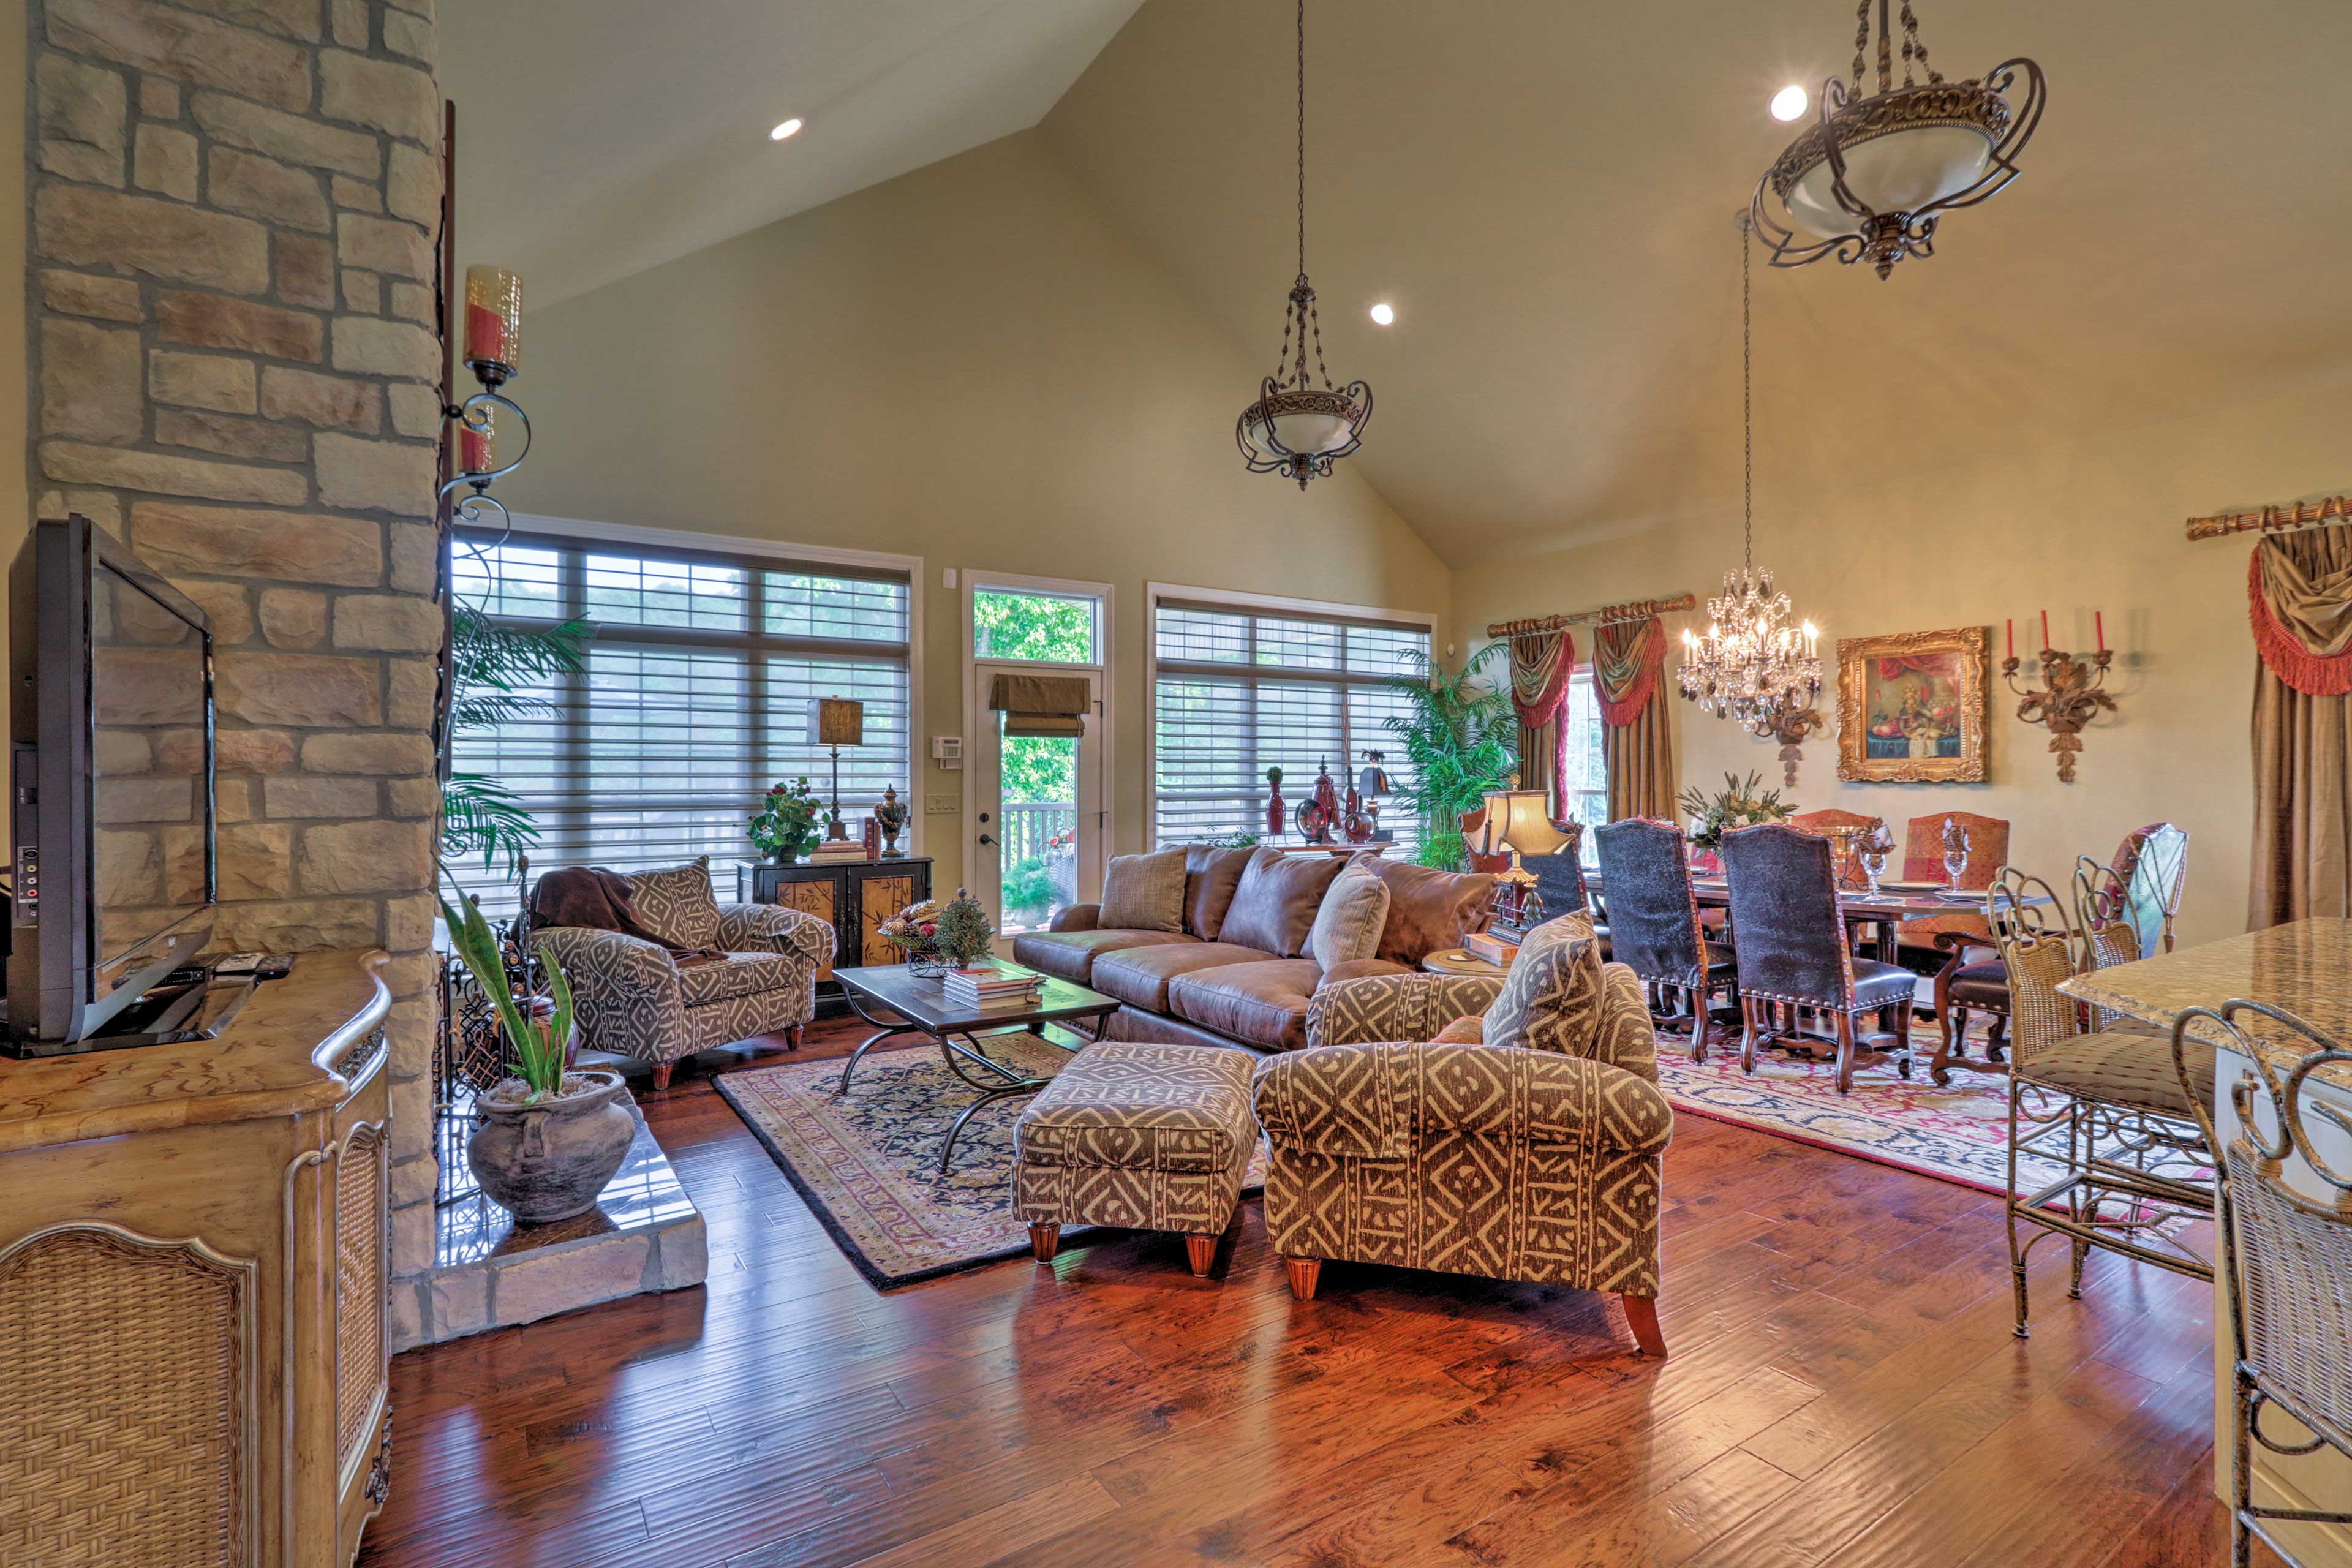 Spread out in 2,800 square feet of luxurious living space with vaulted ceilings.